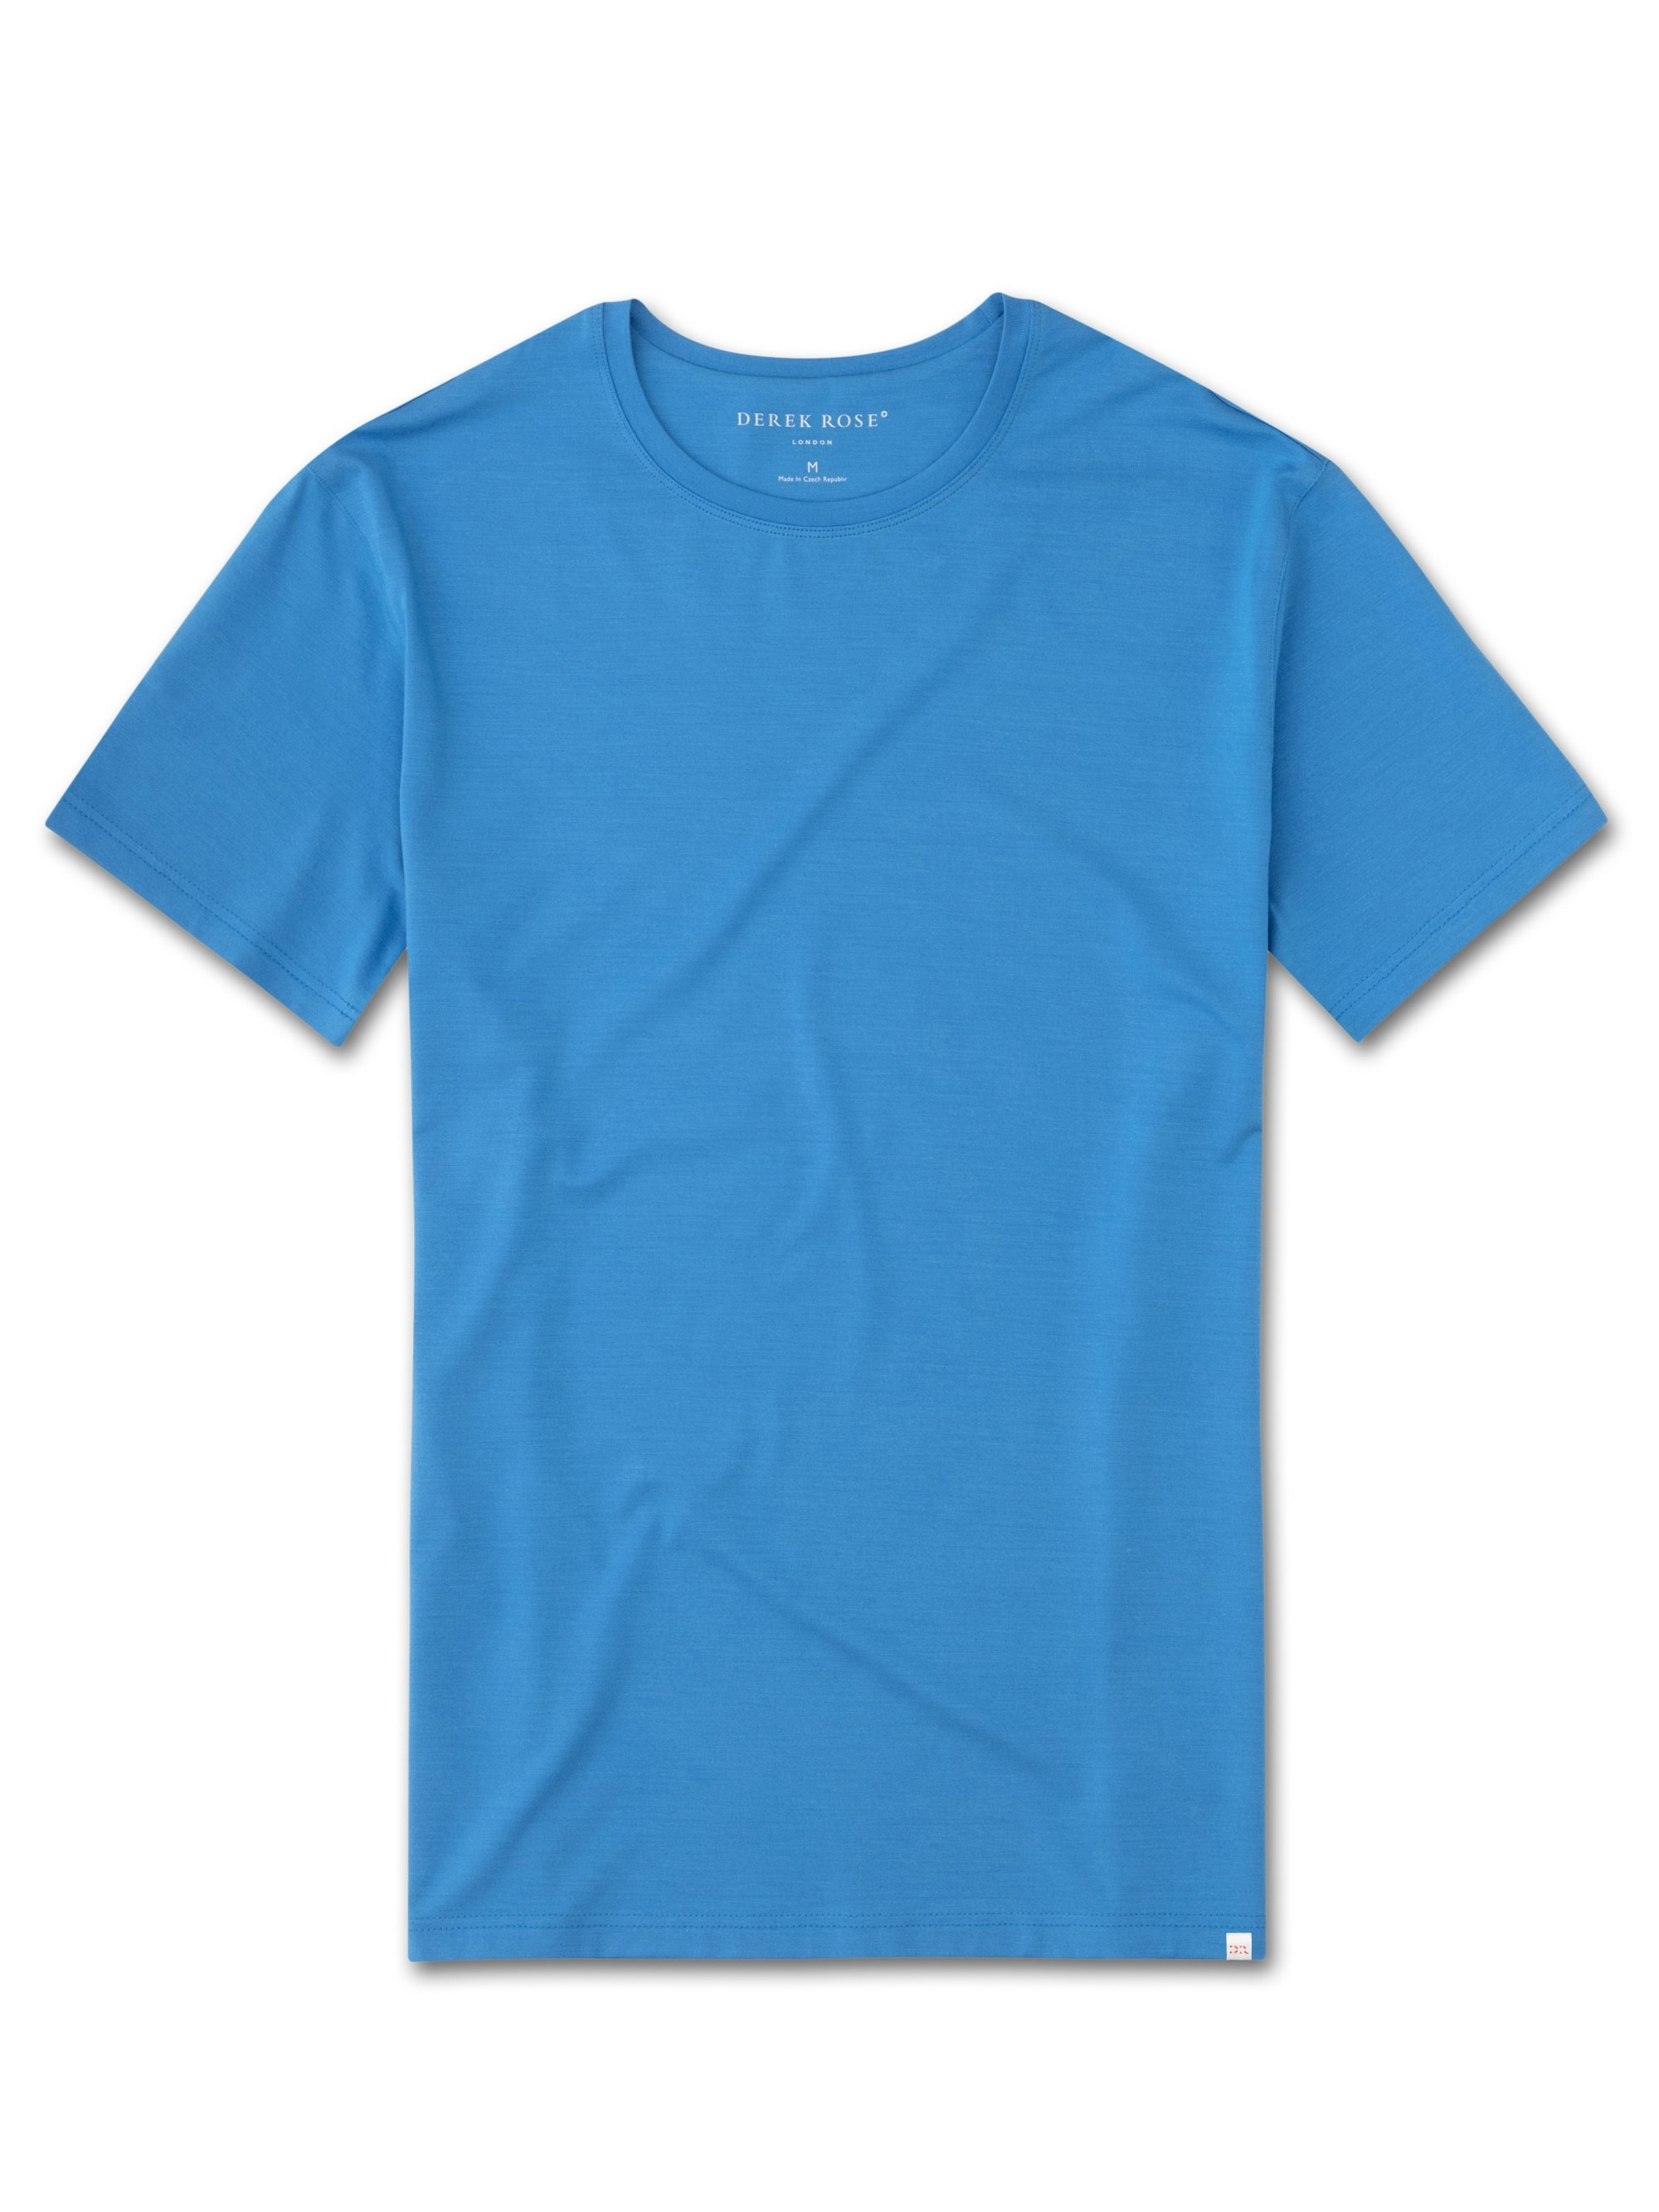 Men's Short Sleeve T-Shirt Basel 4 Micro Modal Stretch Blue